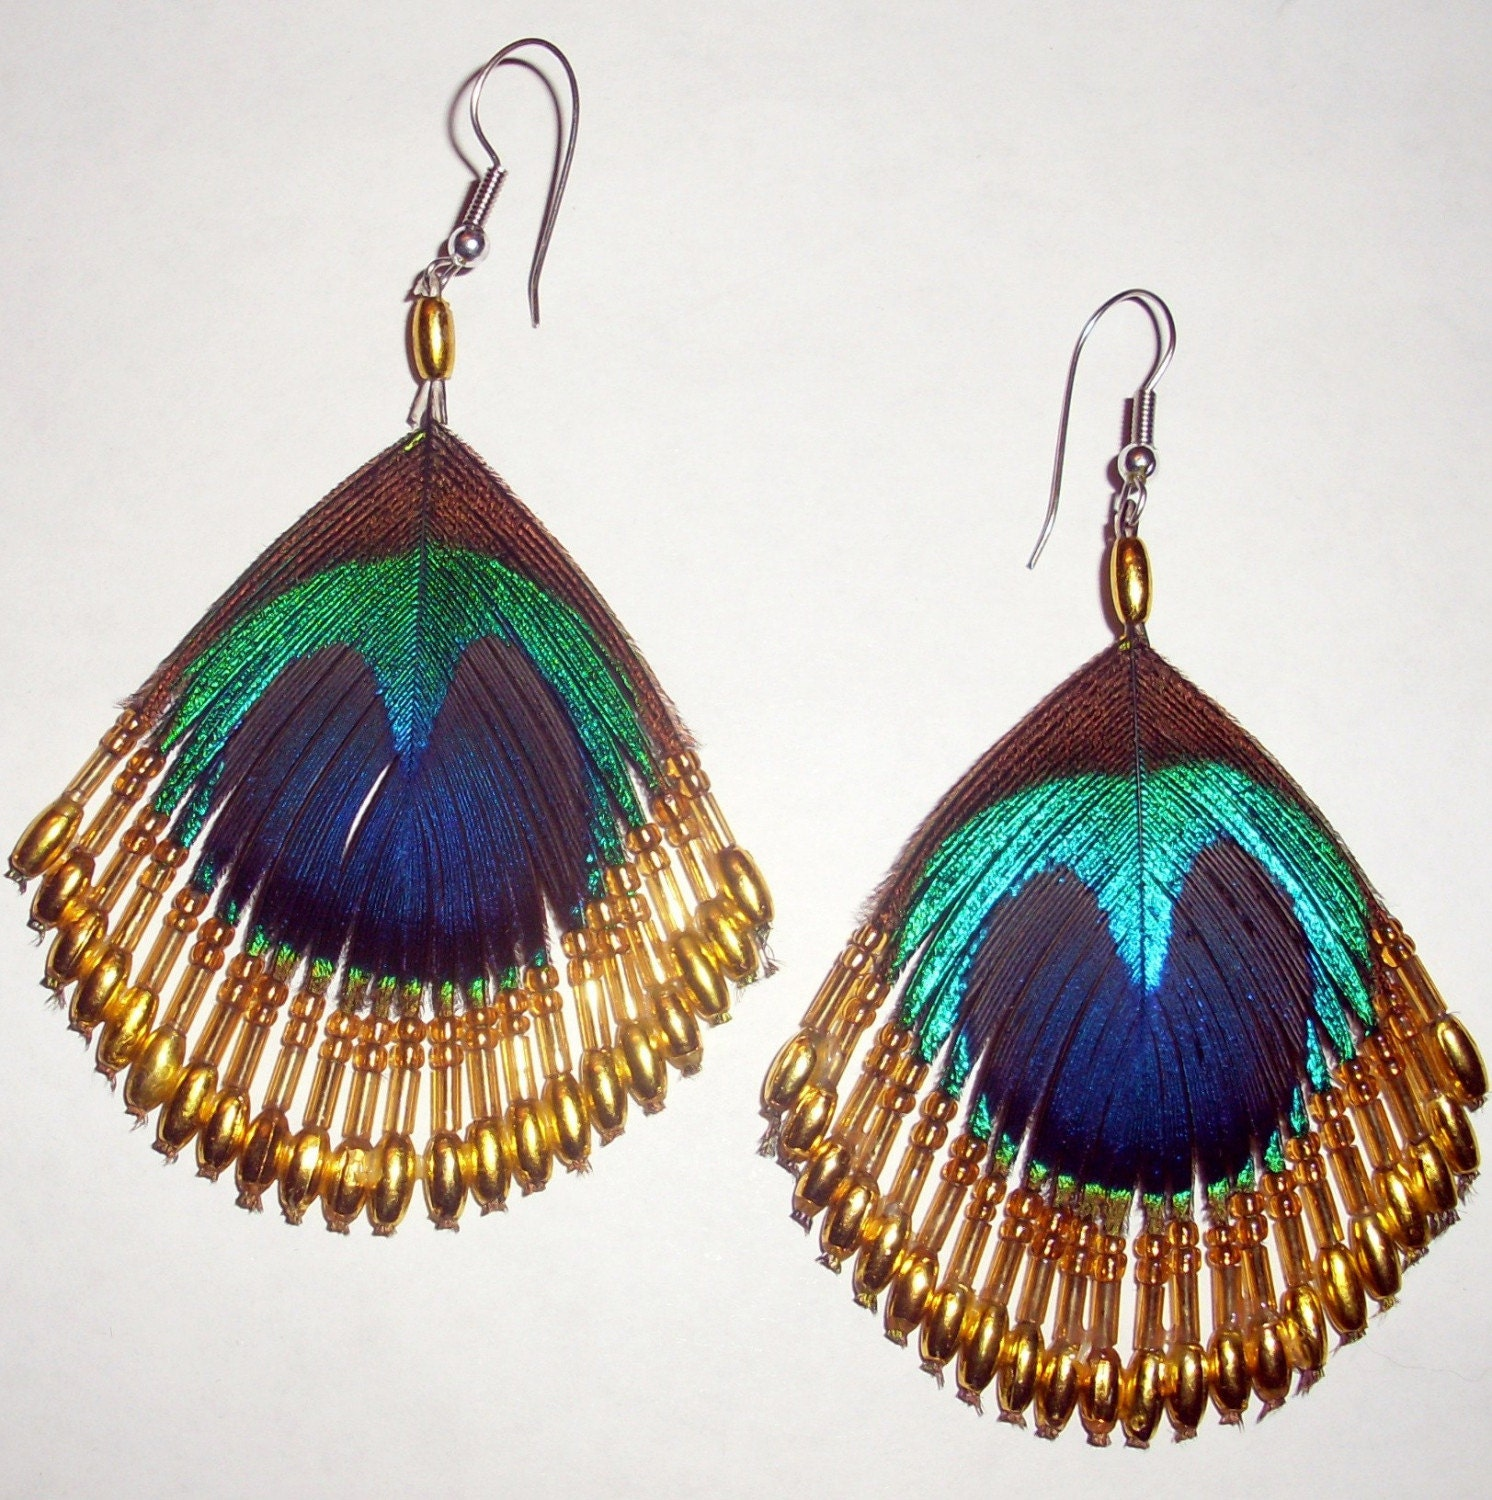 native american peacock feather earrings